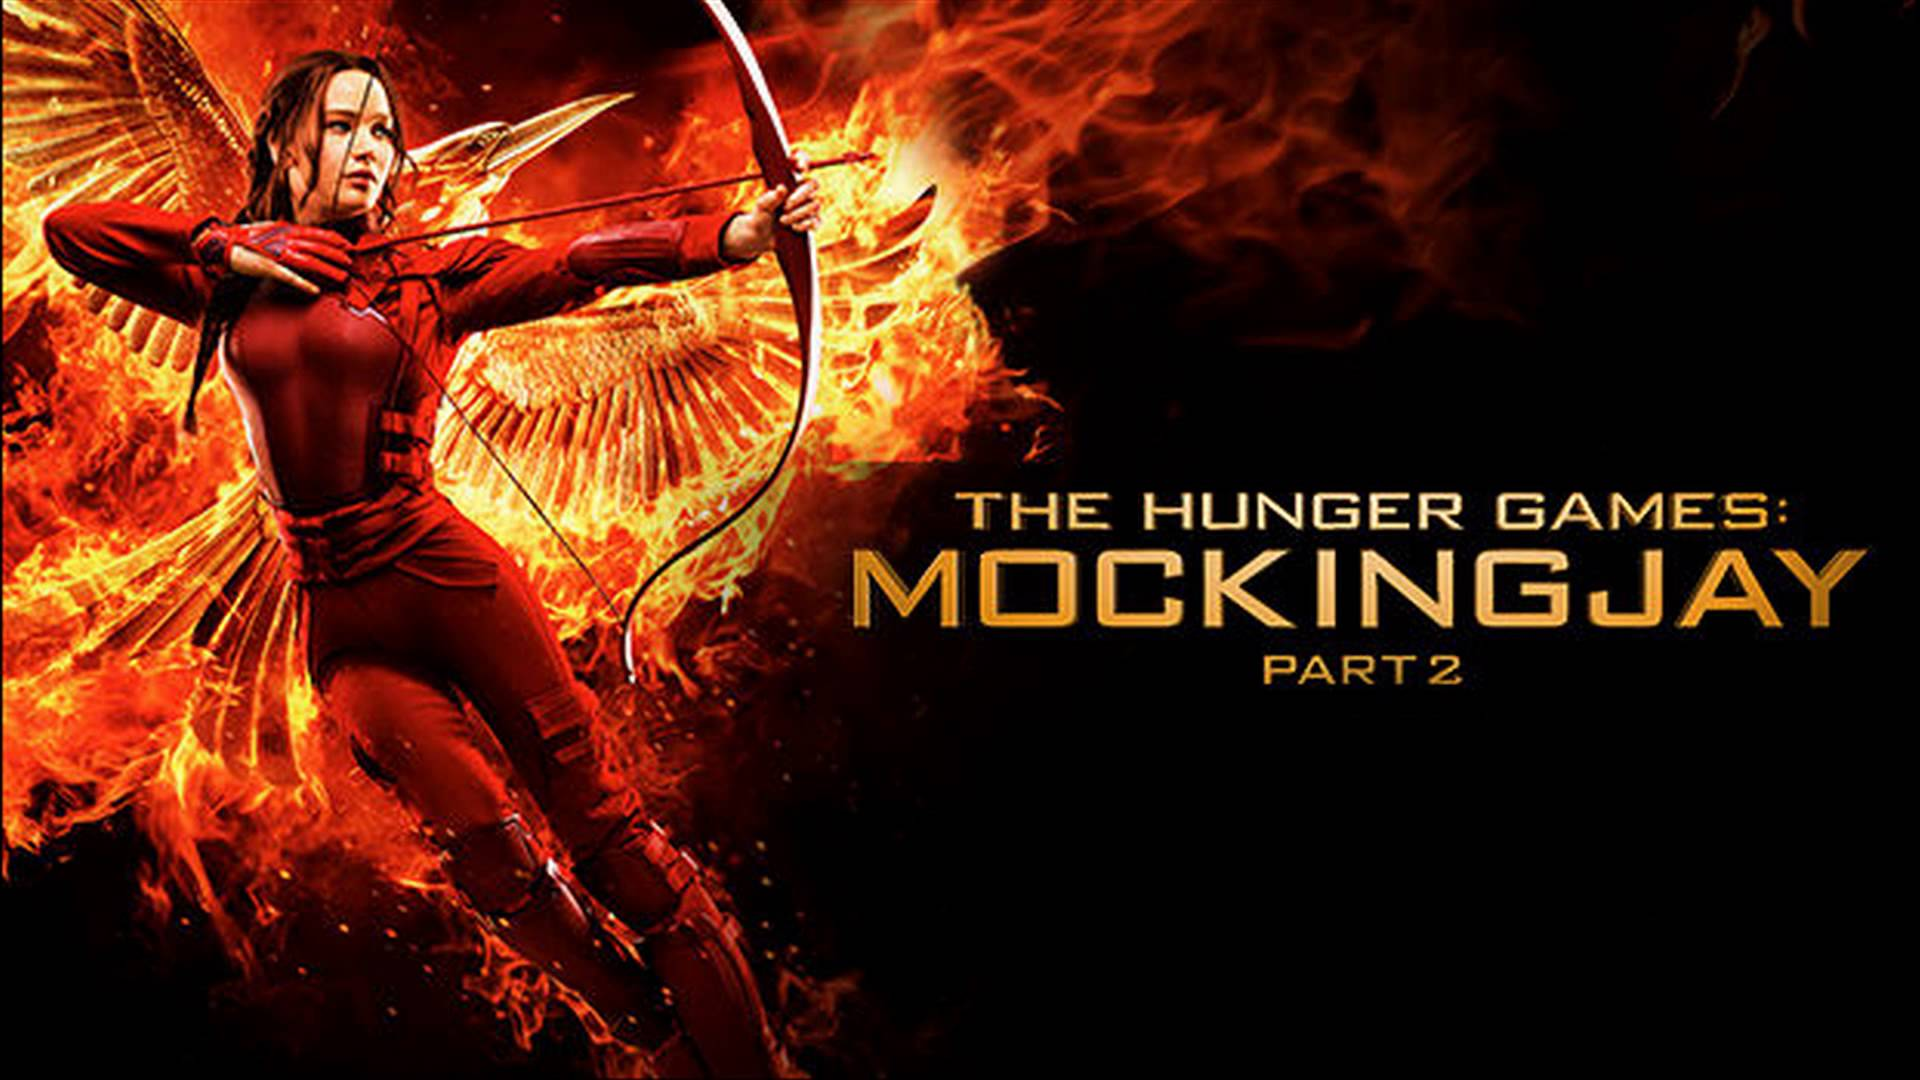 Download The Latest Wallpaper Of The Movie – Hunger Games Wallpaper